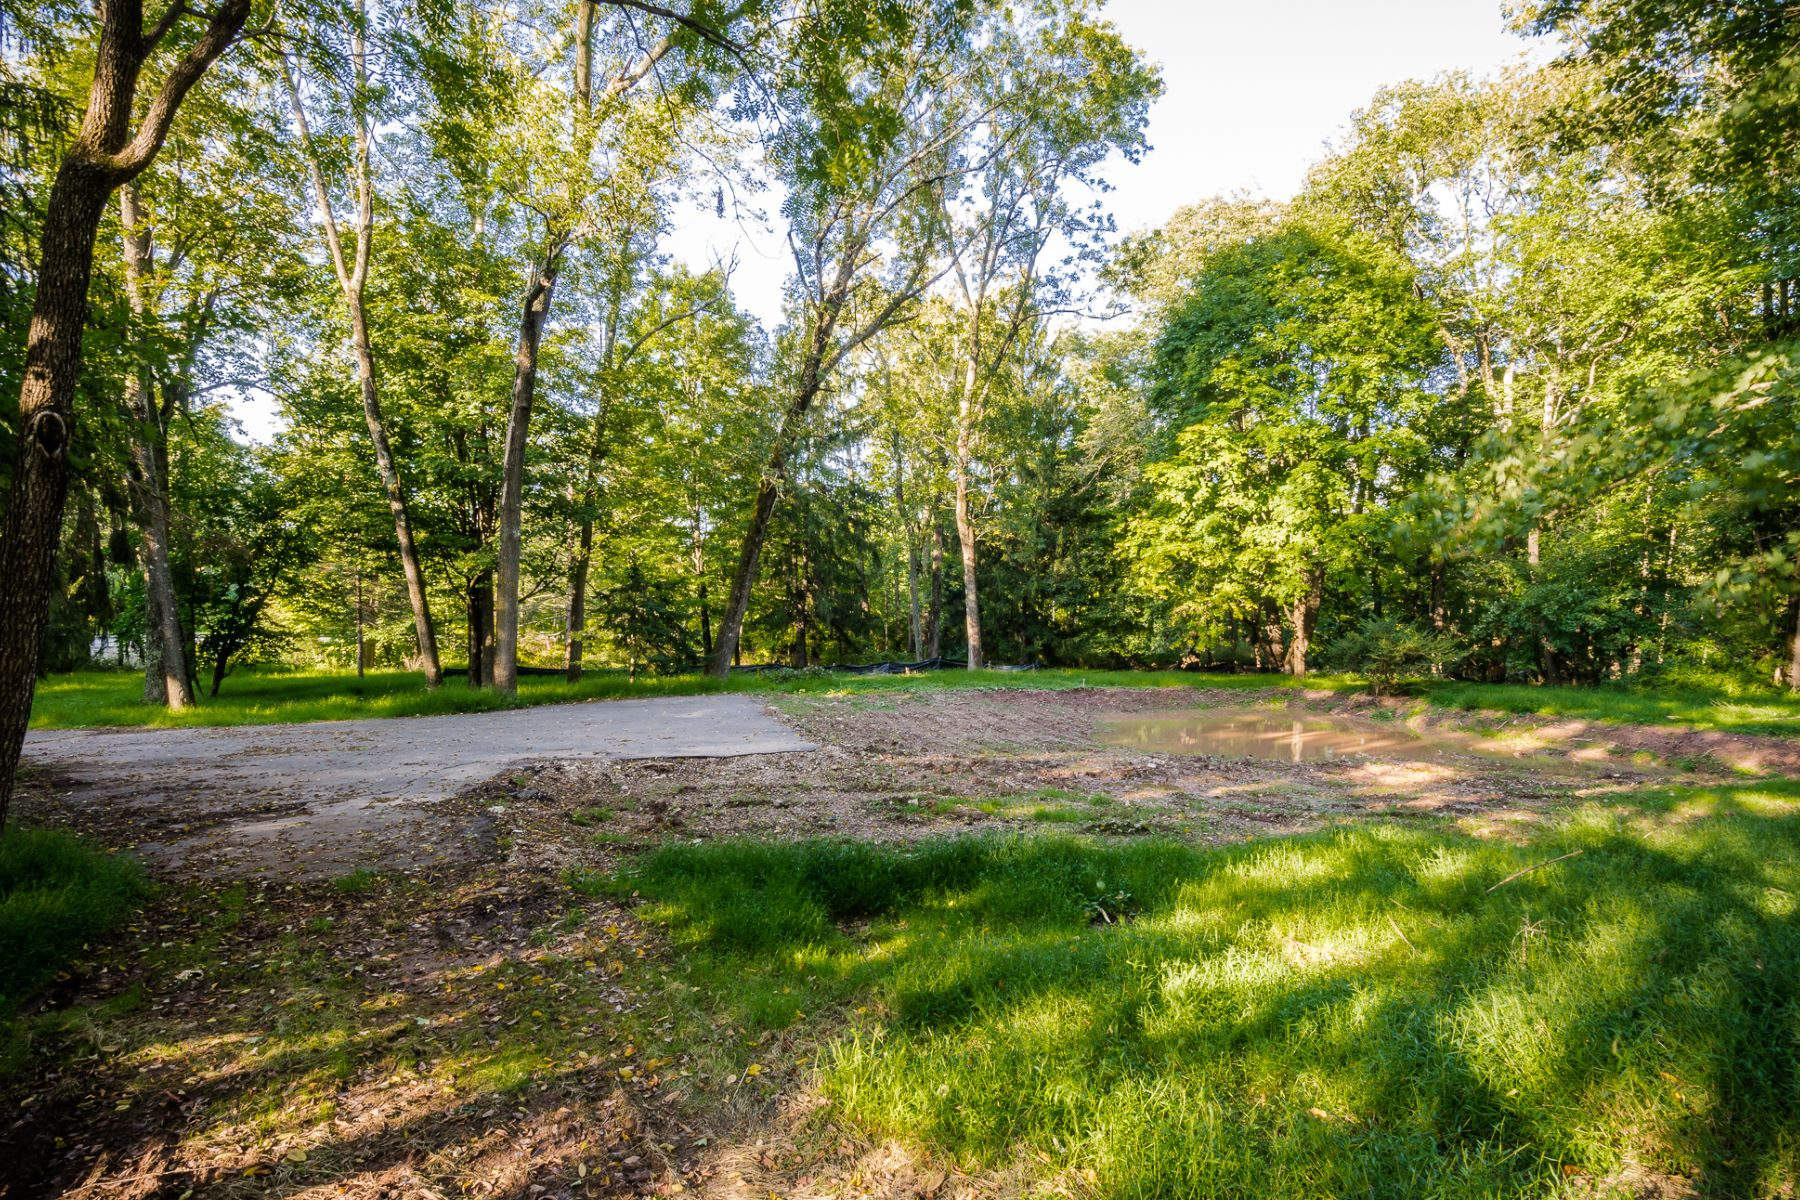 Additional photo for property listing at Build your dream house in Skillman 1.38 acres - Montgomery Township 81 Burnt Hill Road, Skillman, New Jersey 08558 United States